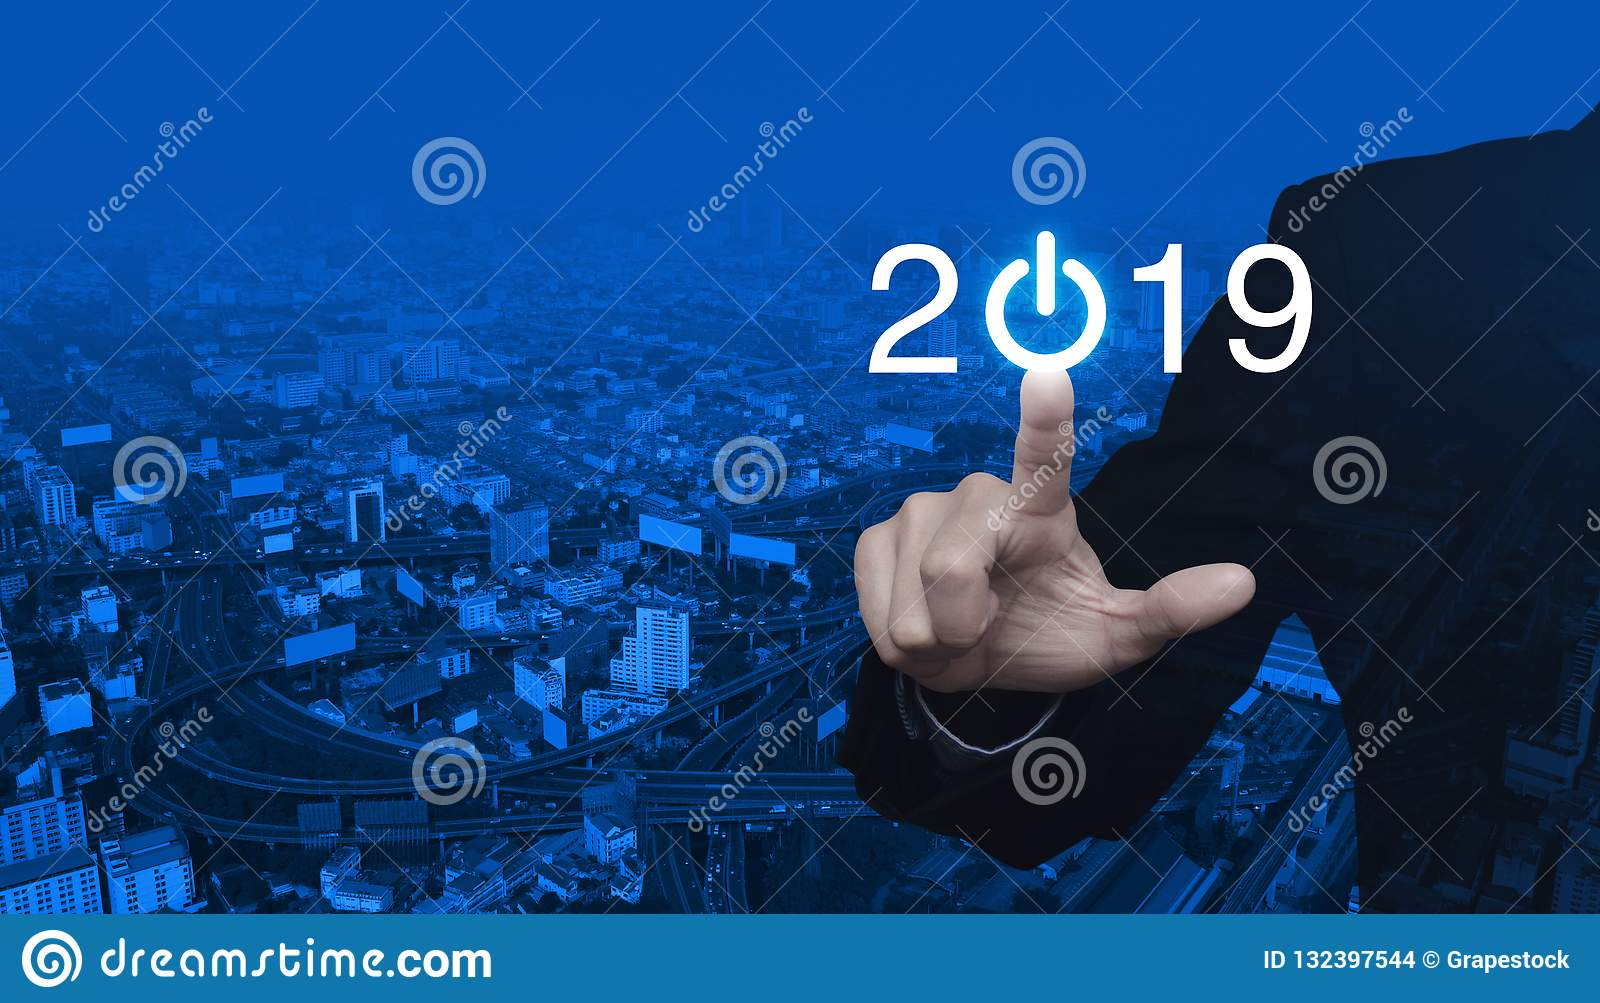 Businessman pressing 2019 start up business icon